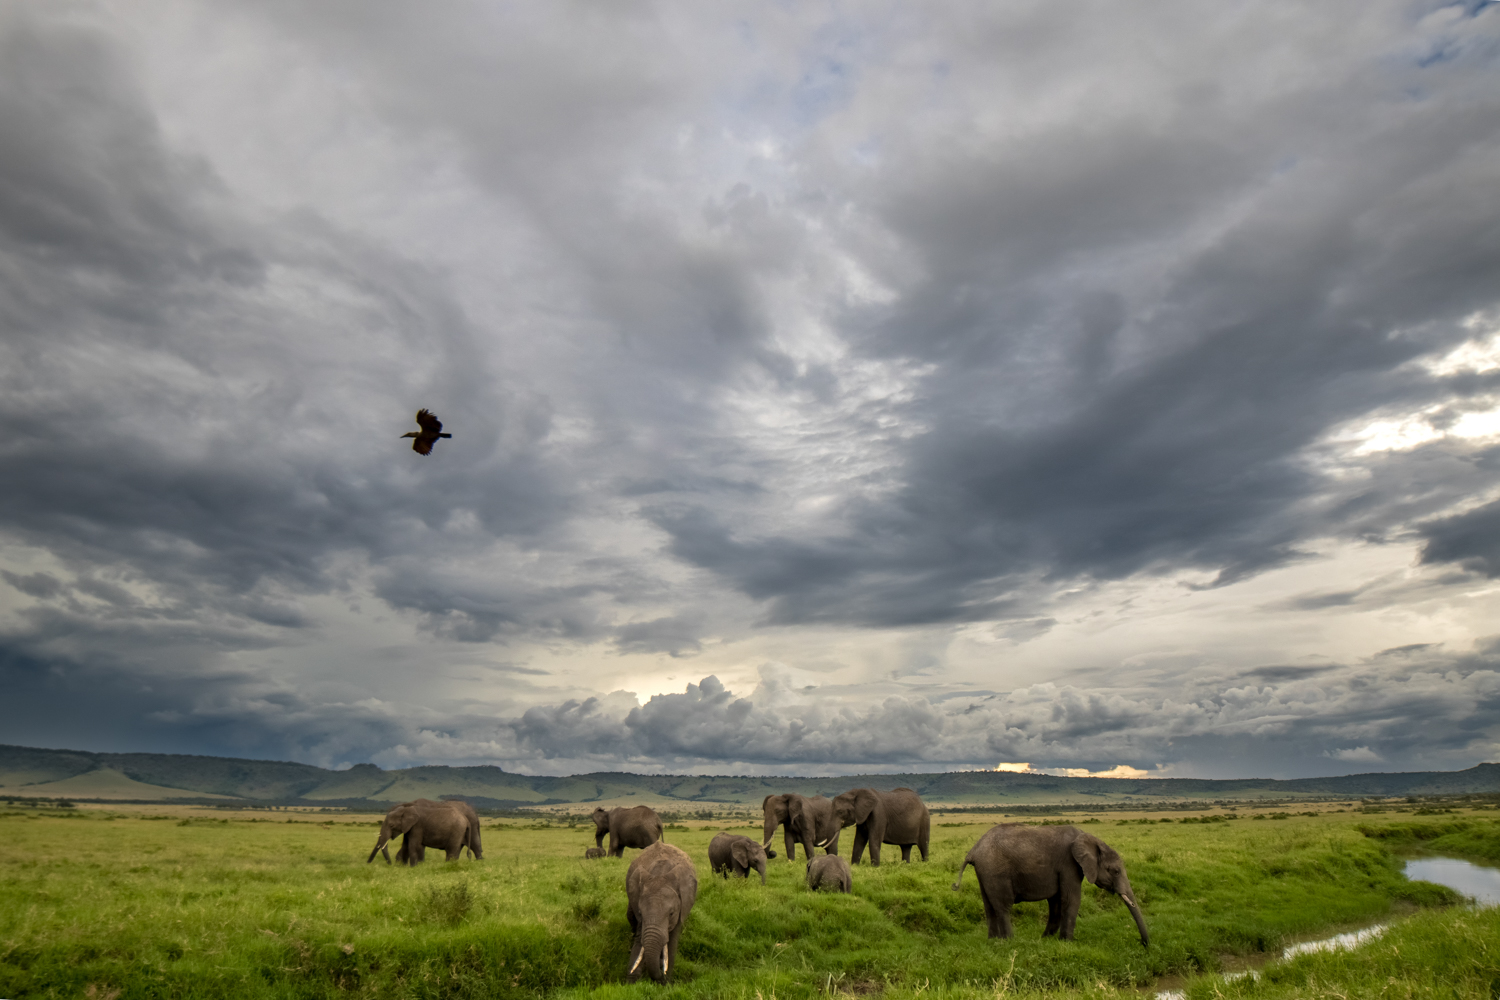 Elephants and Storms